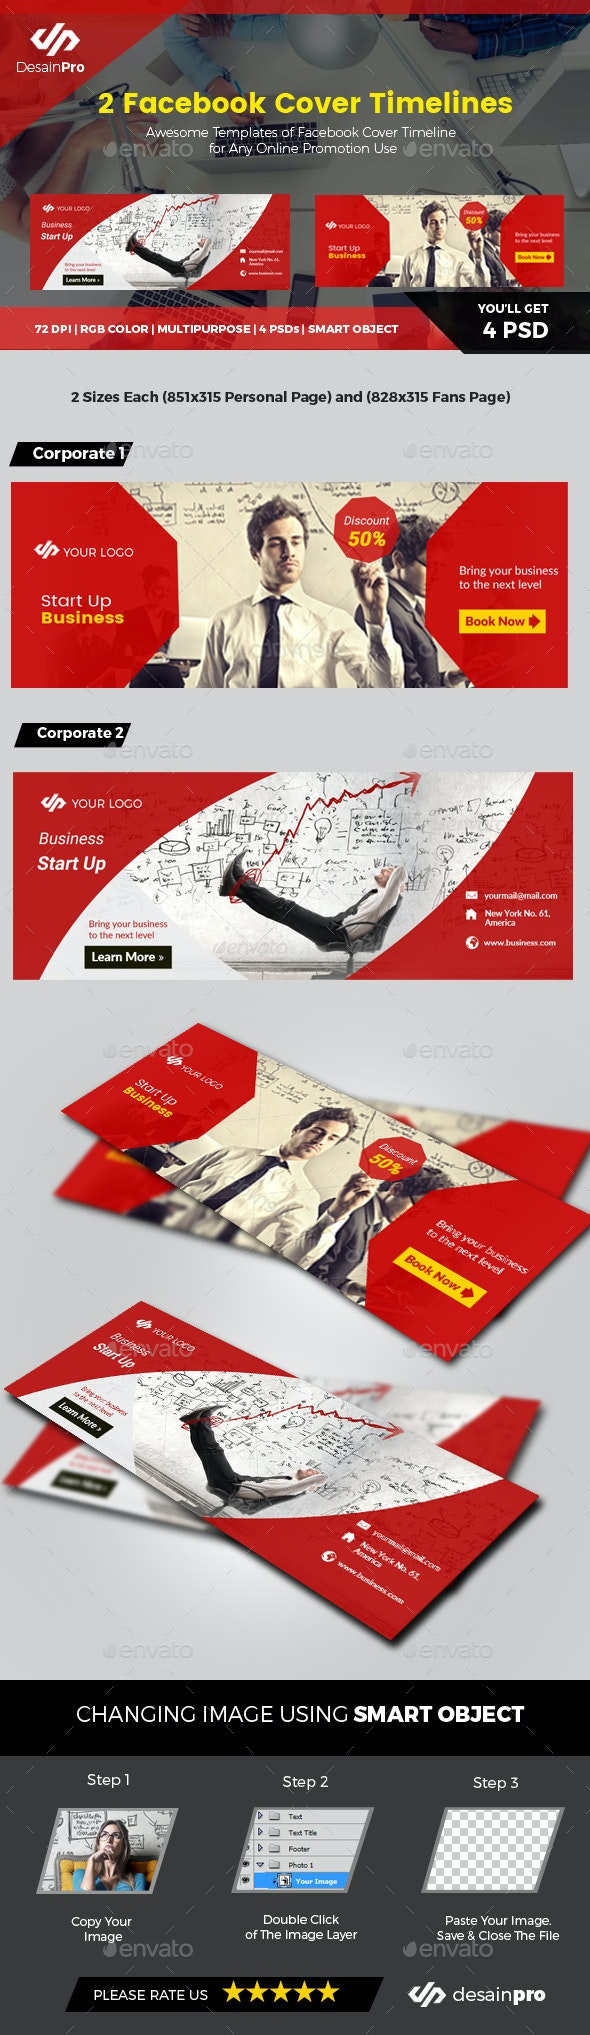 Red Business Facebook Covers - Facebook Timeline Covers Social Media